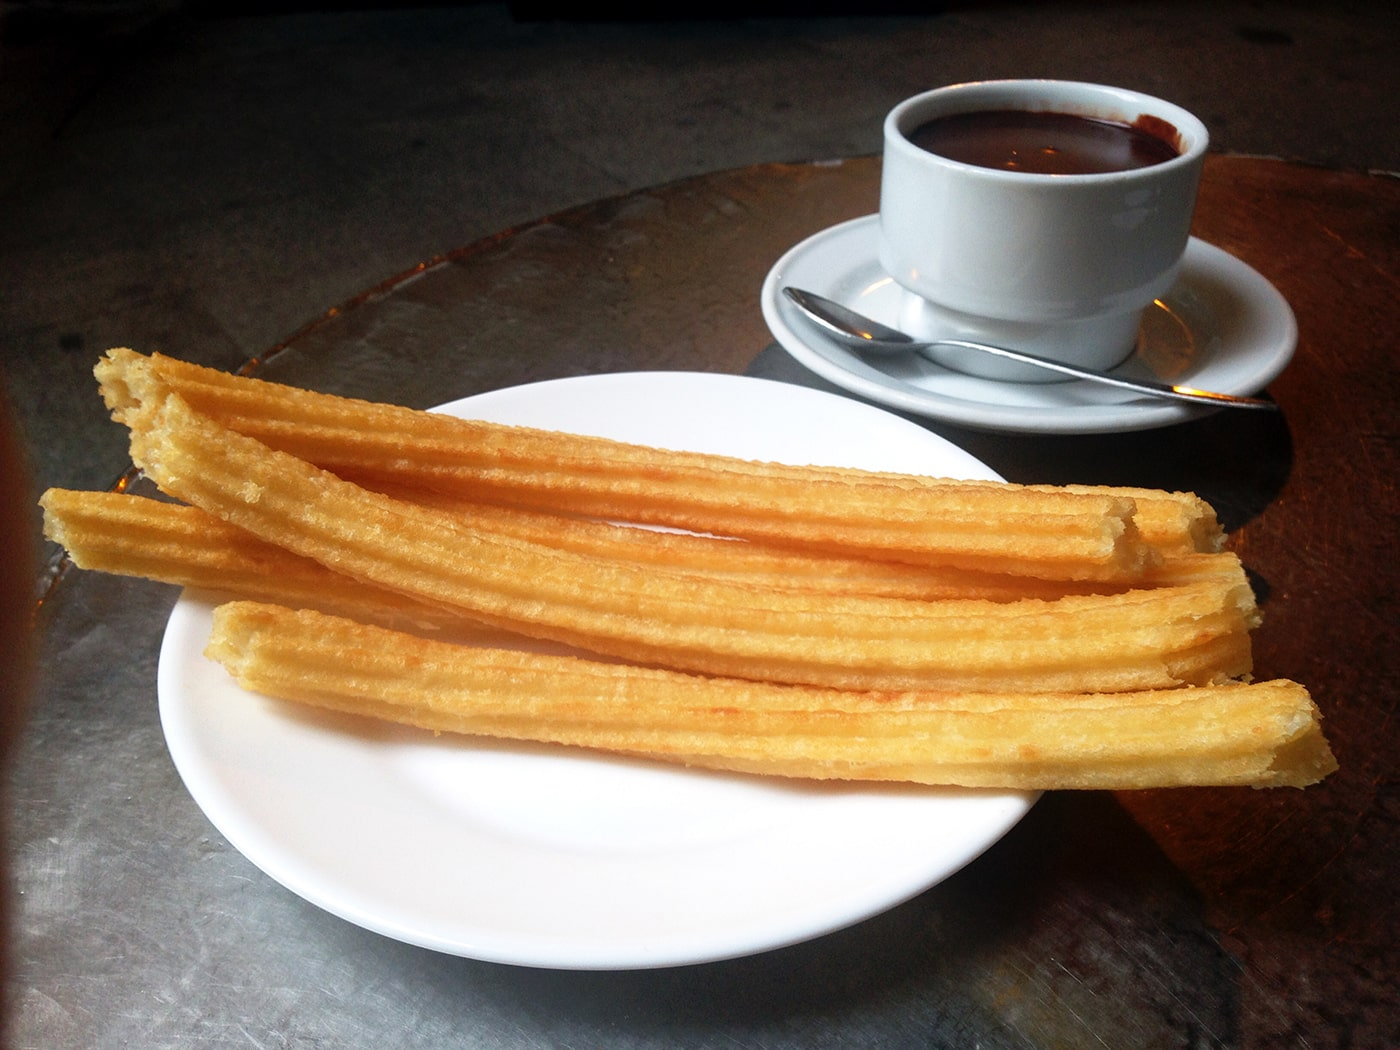 Chocolate con churros in Madrid, Spain